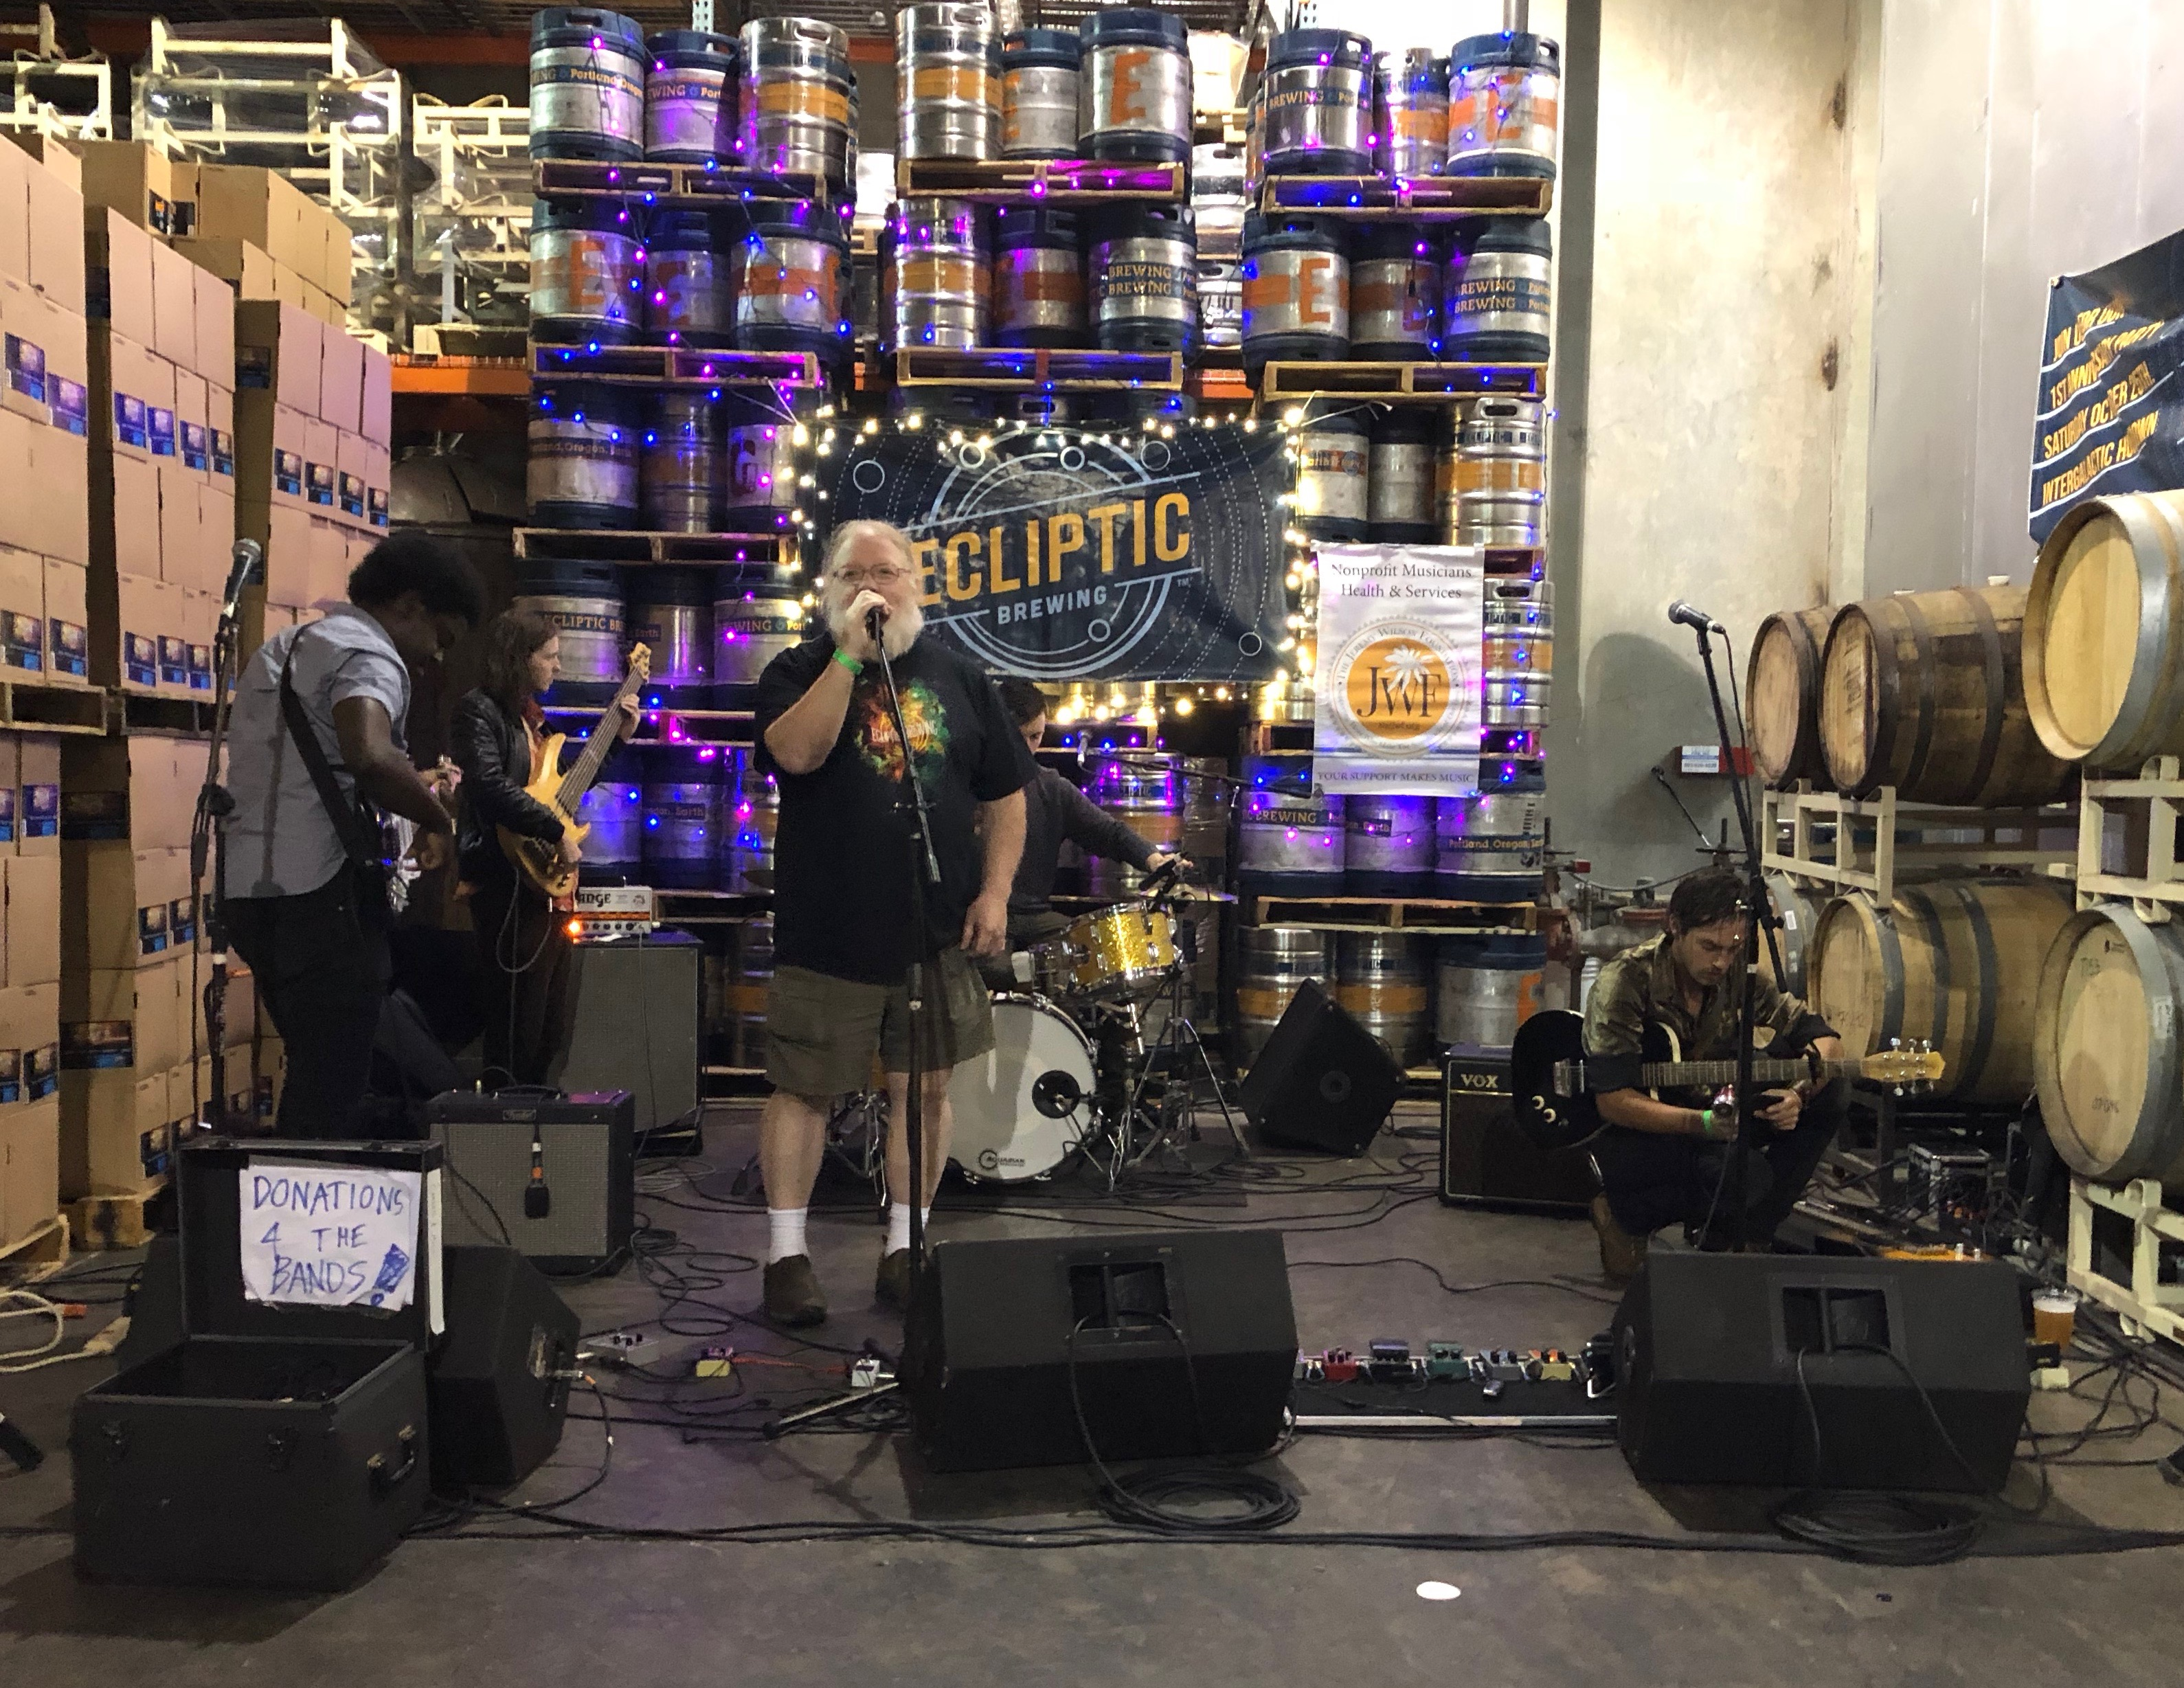 John Harris speaking at Ecliptic Brewing's Anniversary.